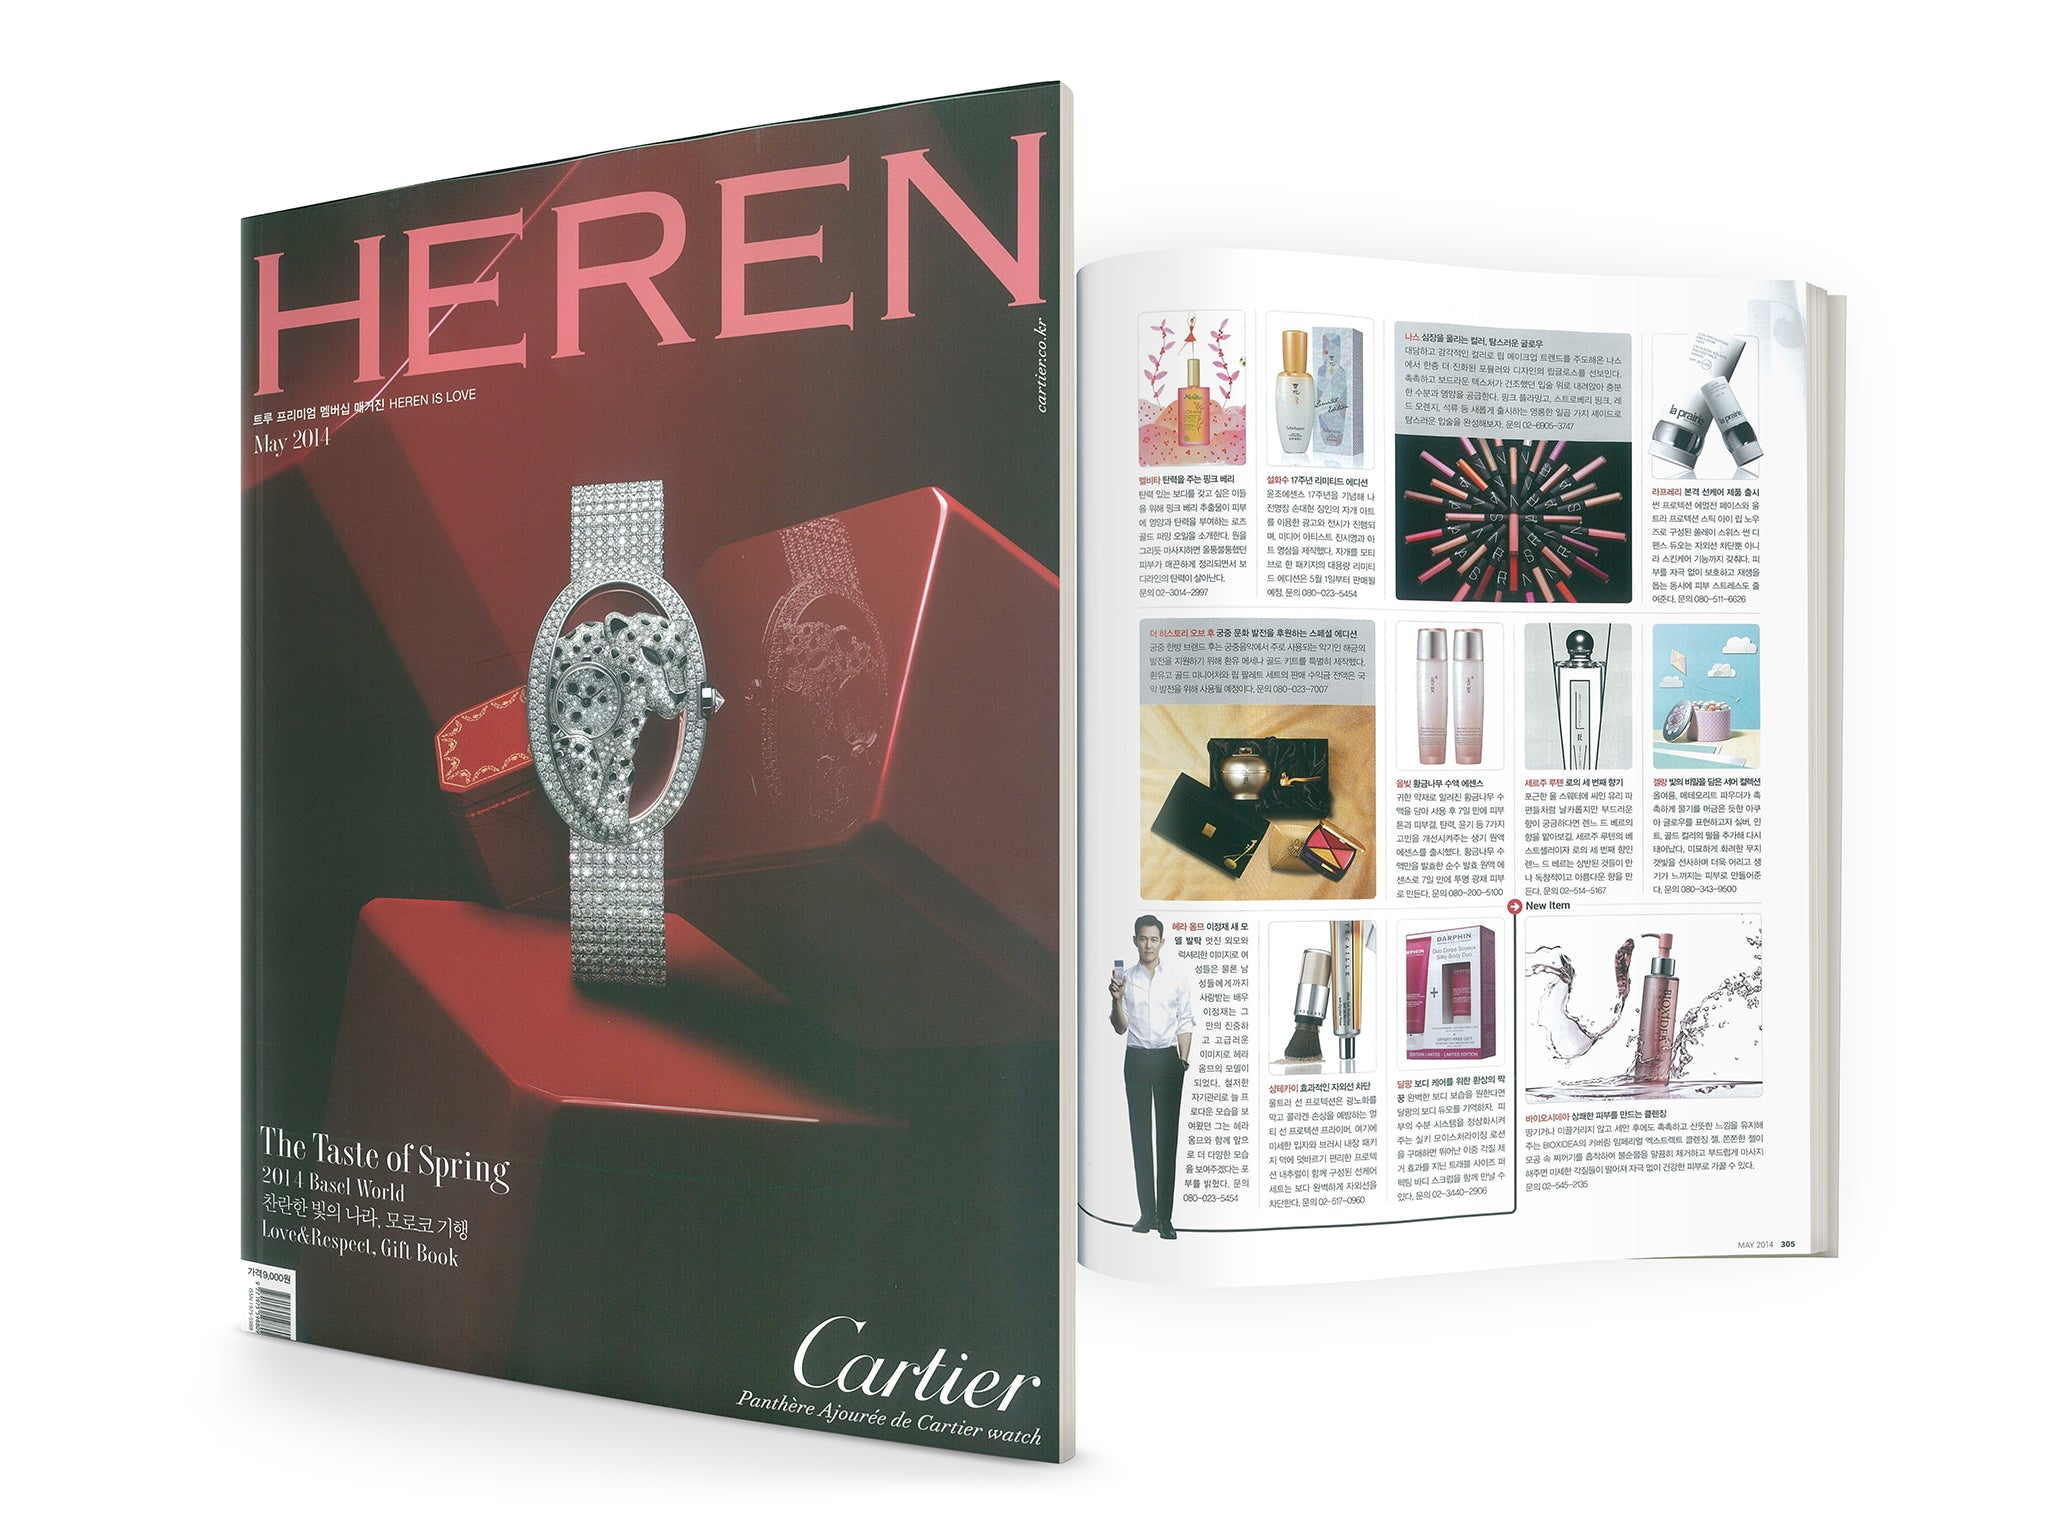 BIOXIDEA Regenerating Skincare System featured in luxury publication, Heren, Asia